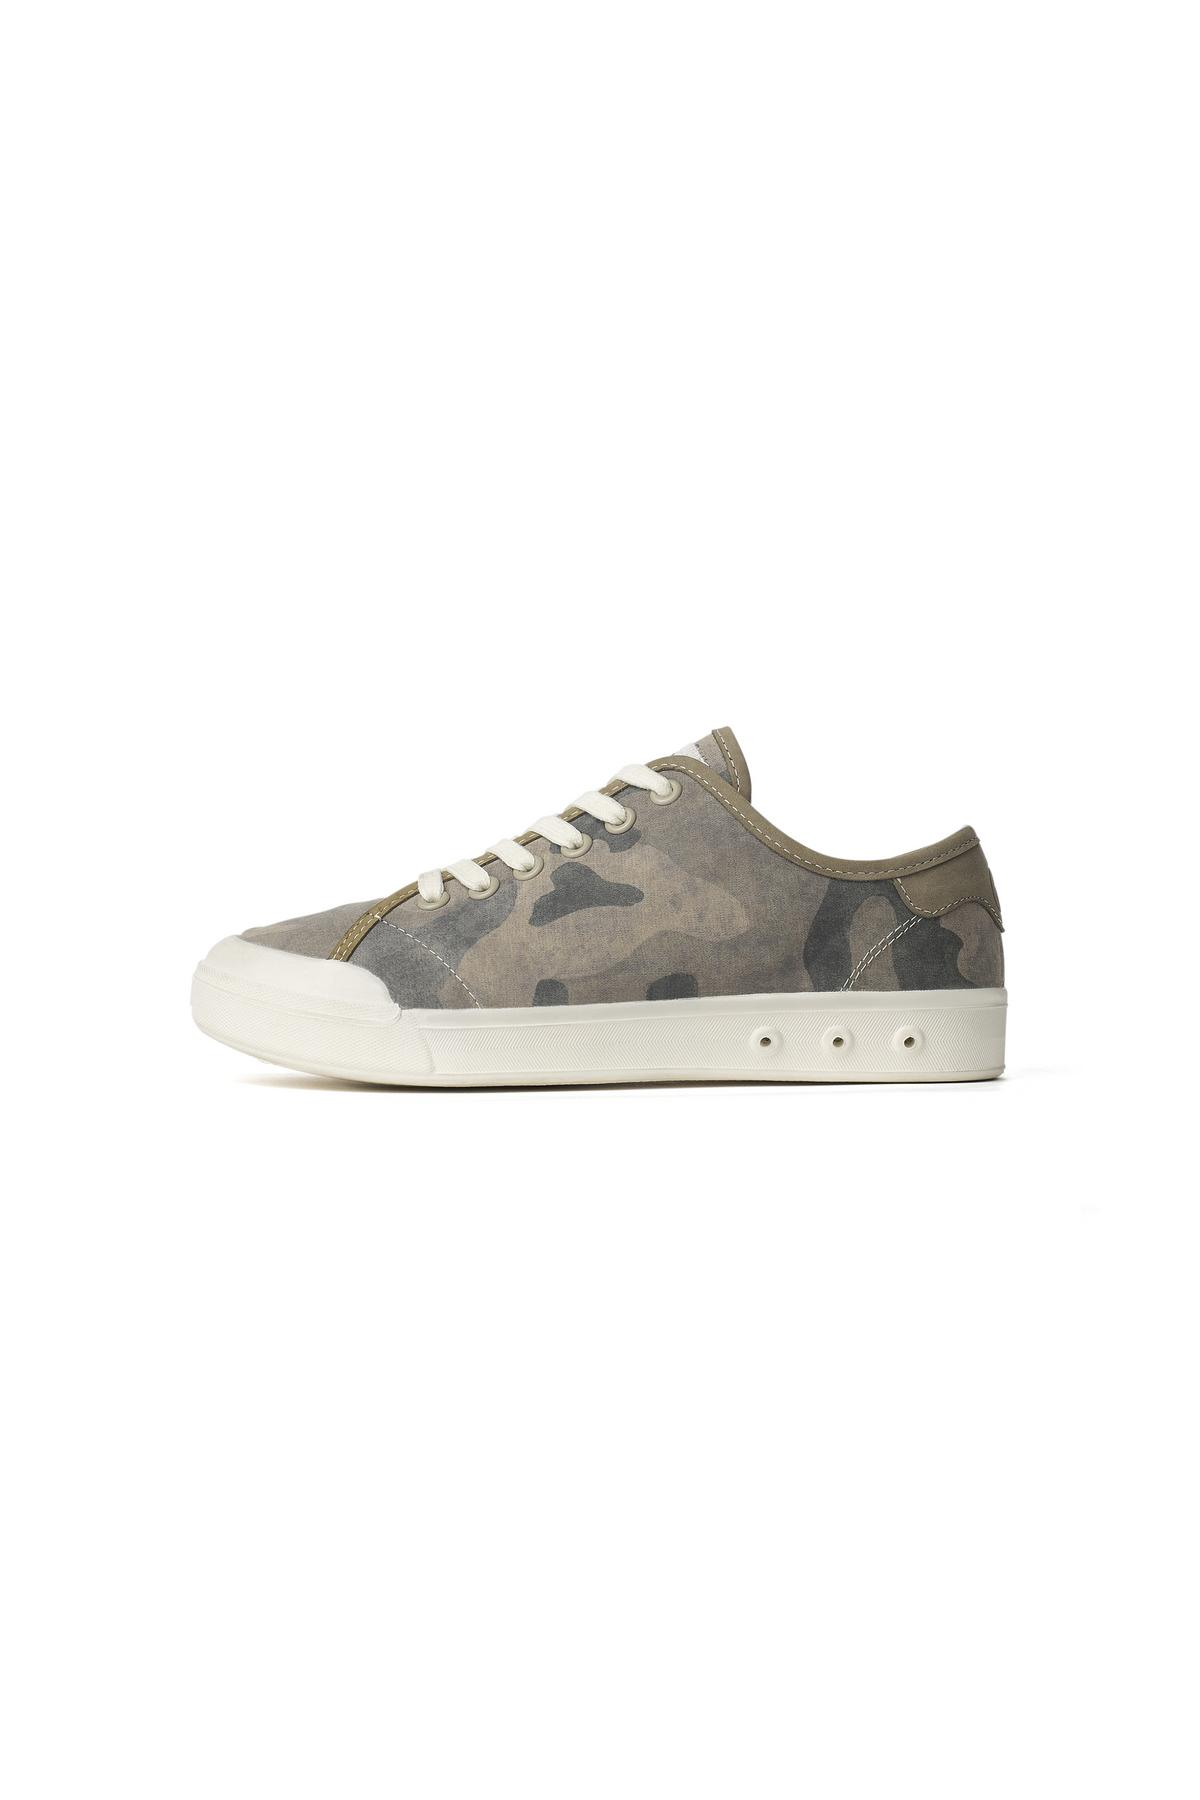 RAG & BONE WOMENS STANDARD ISSUE LACE UP